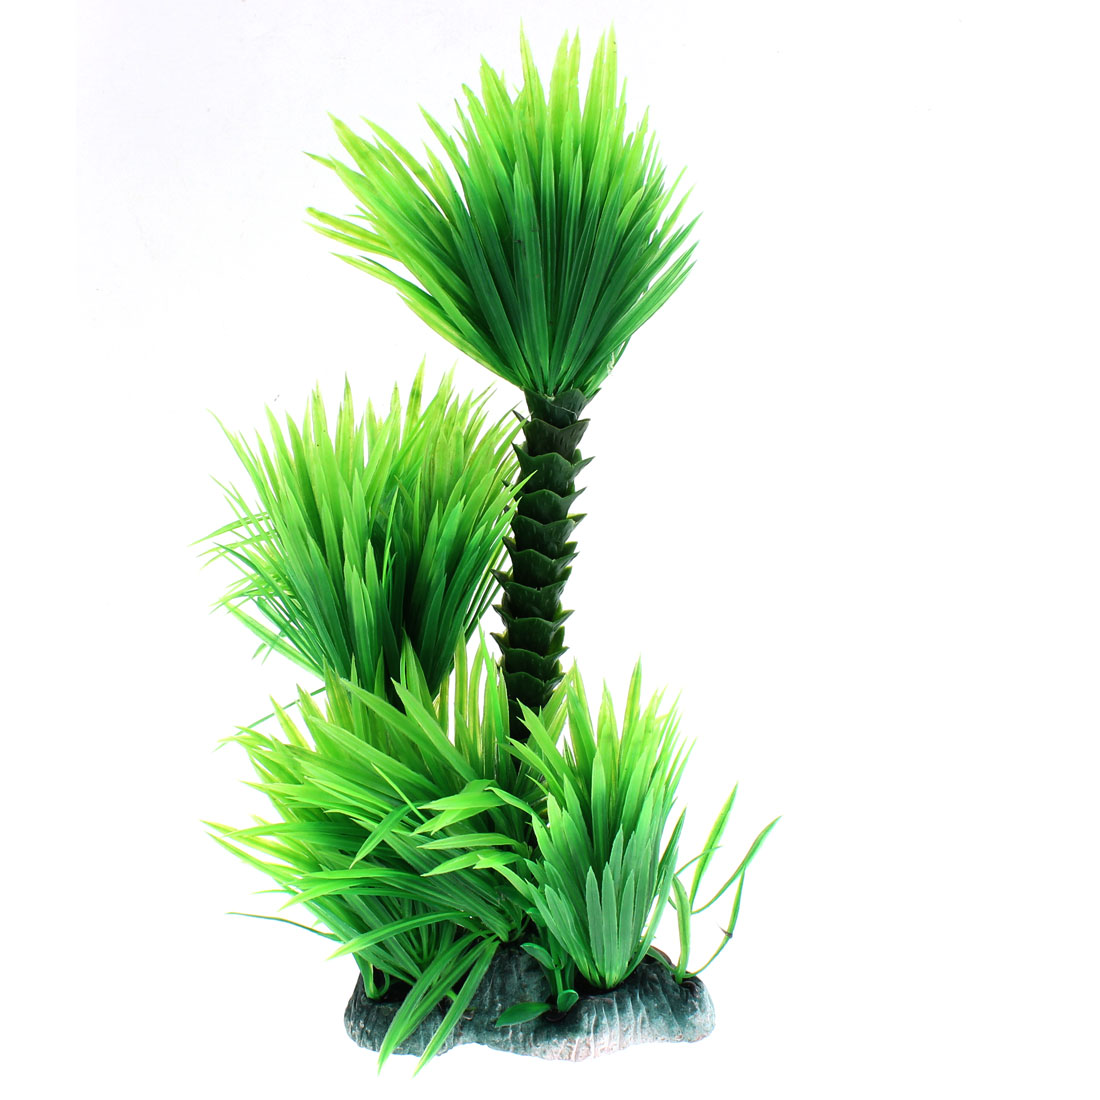 Ceramic Base Plastic Artificial Ornament Underwater Plant for Fish Tank Aquarium